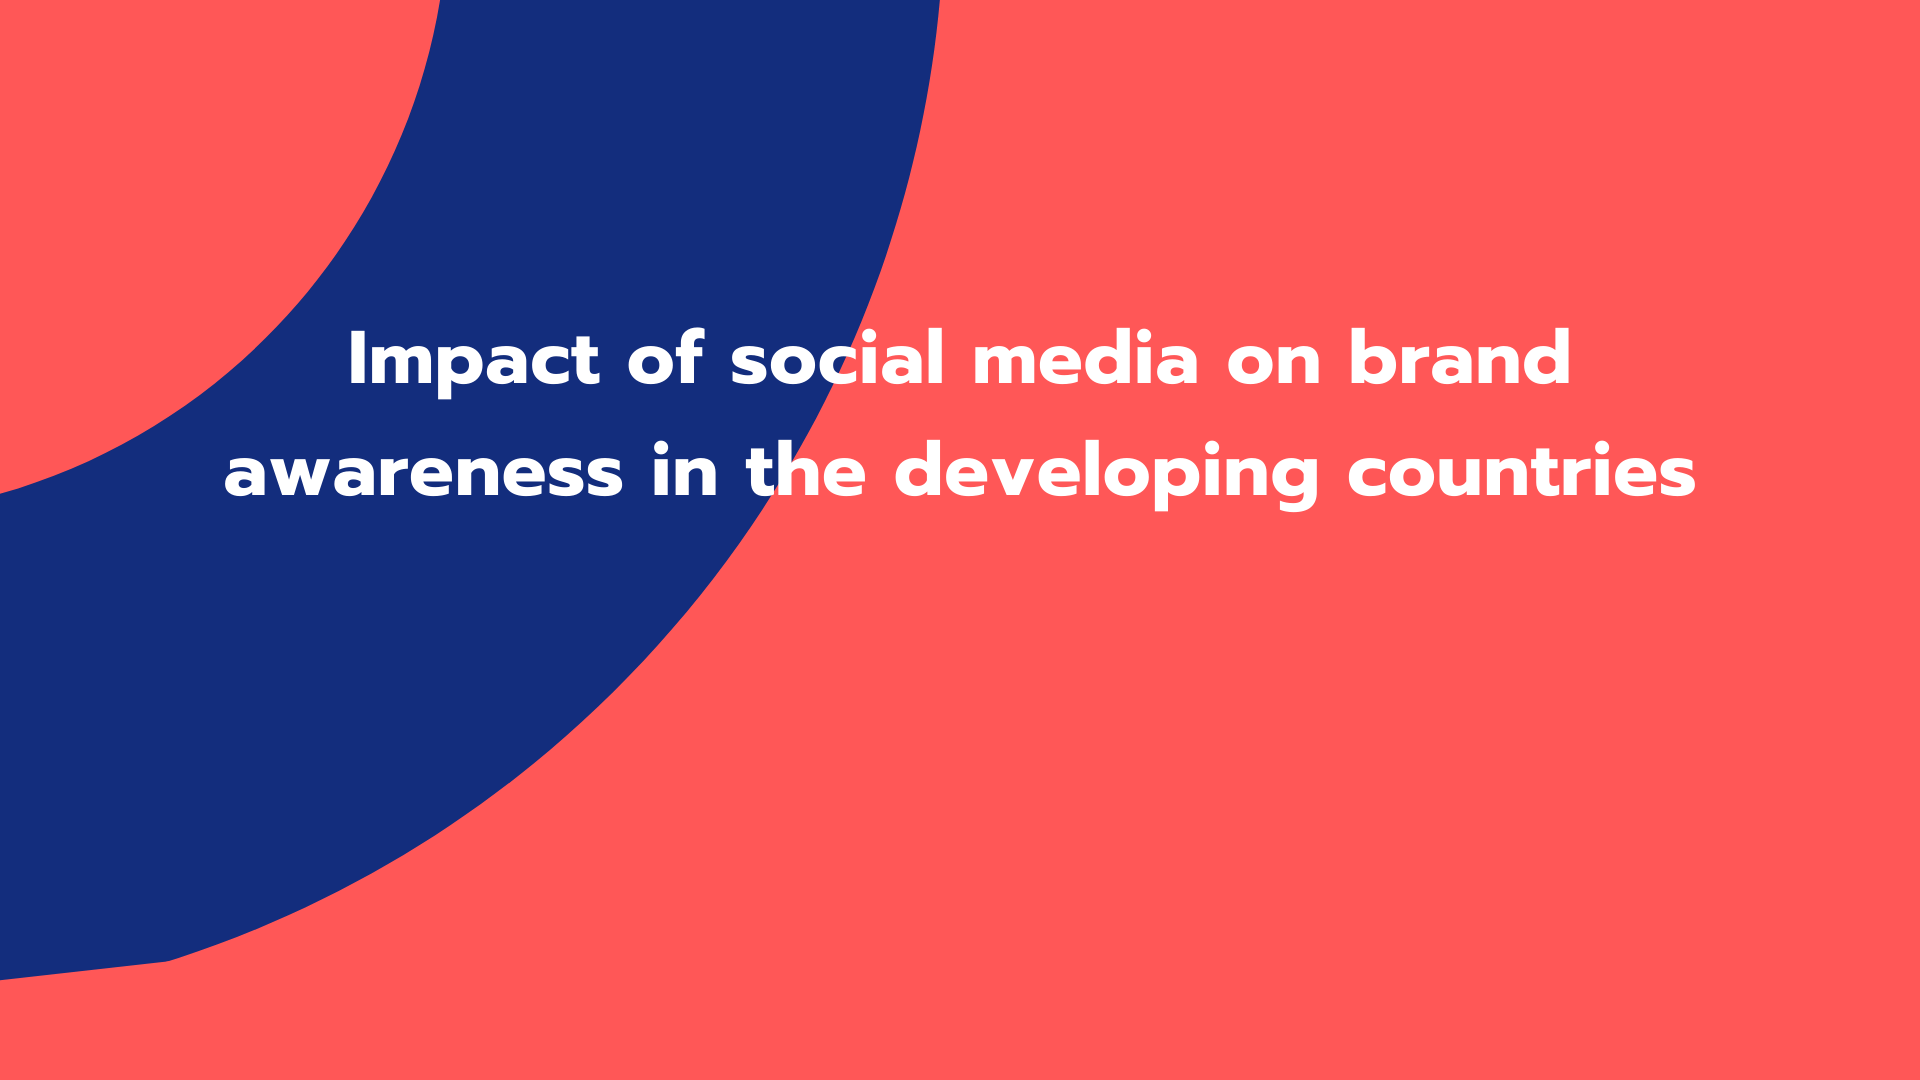 Impact of social media on brand awareness in the developing countries